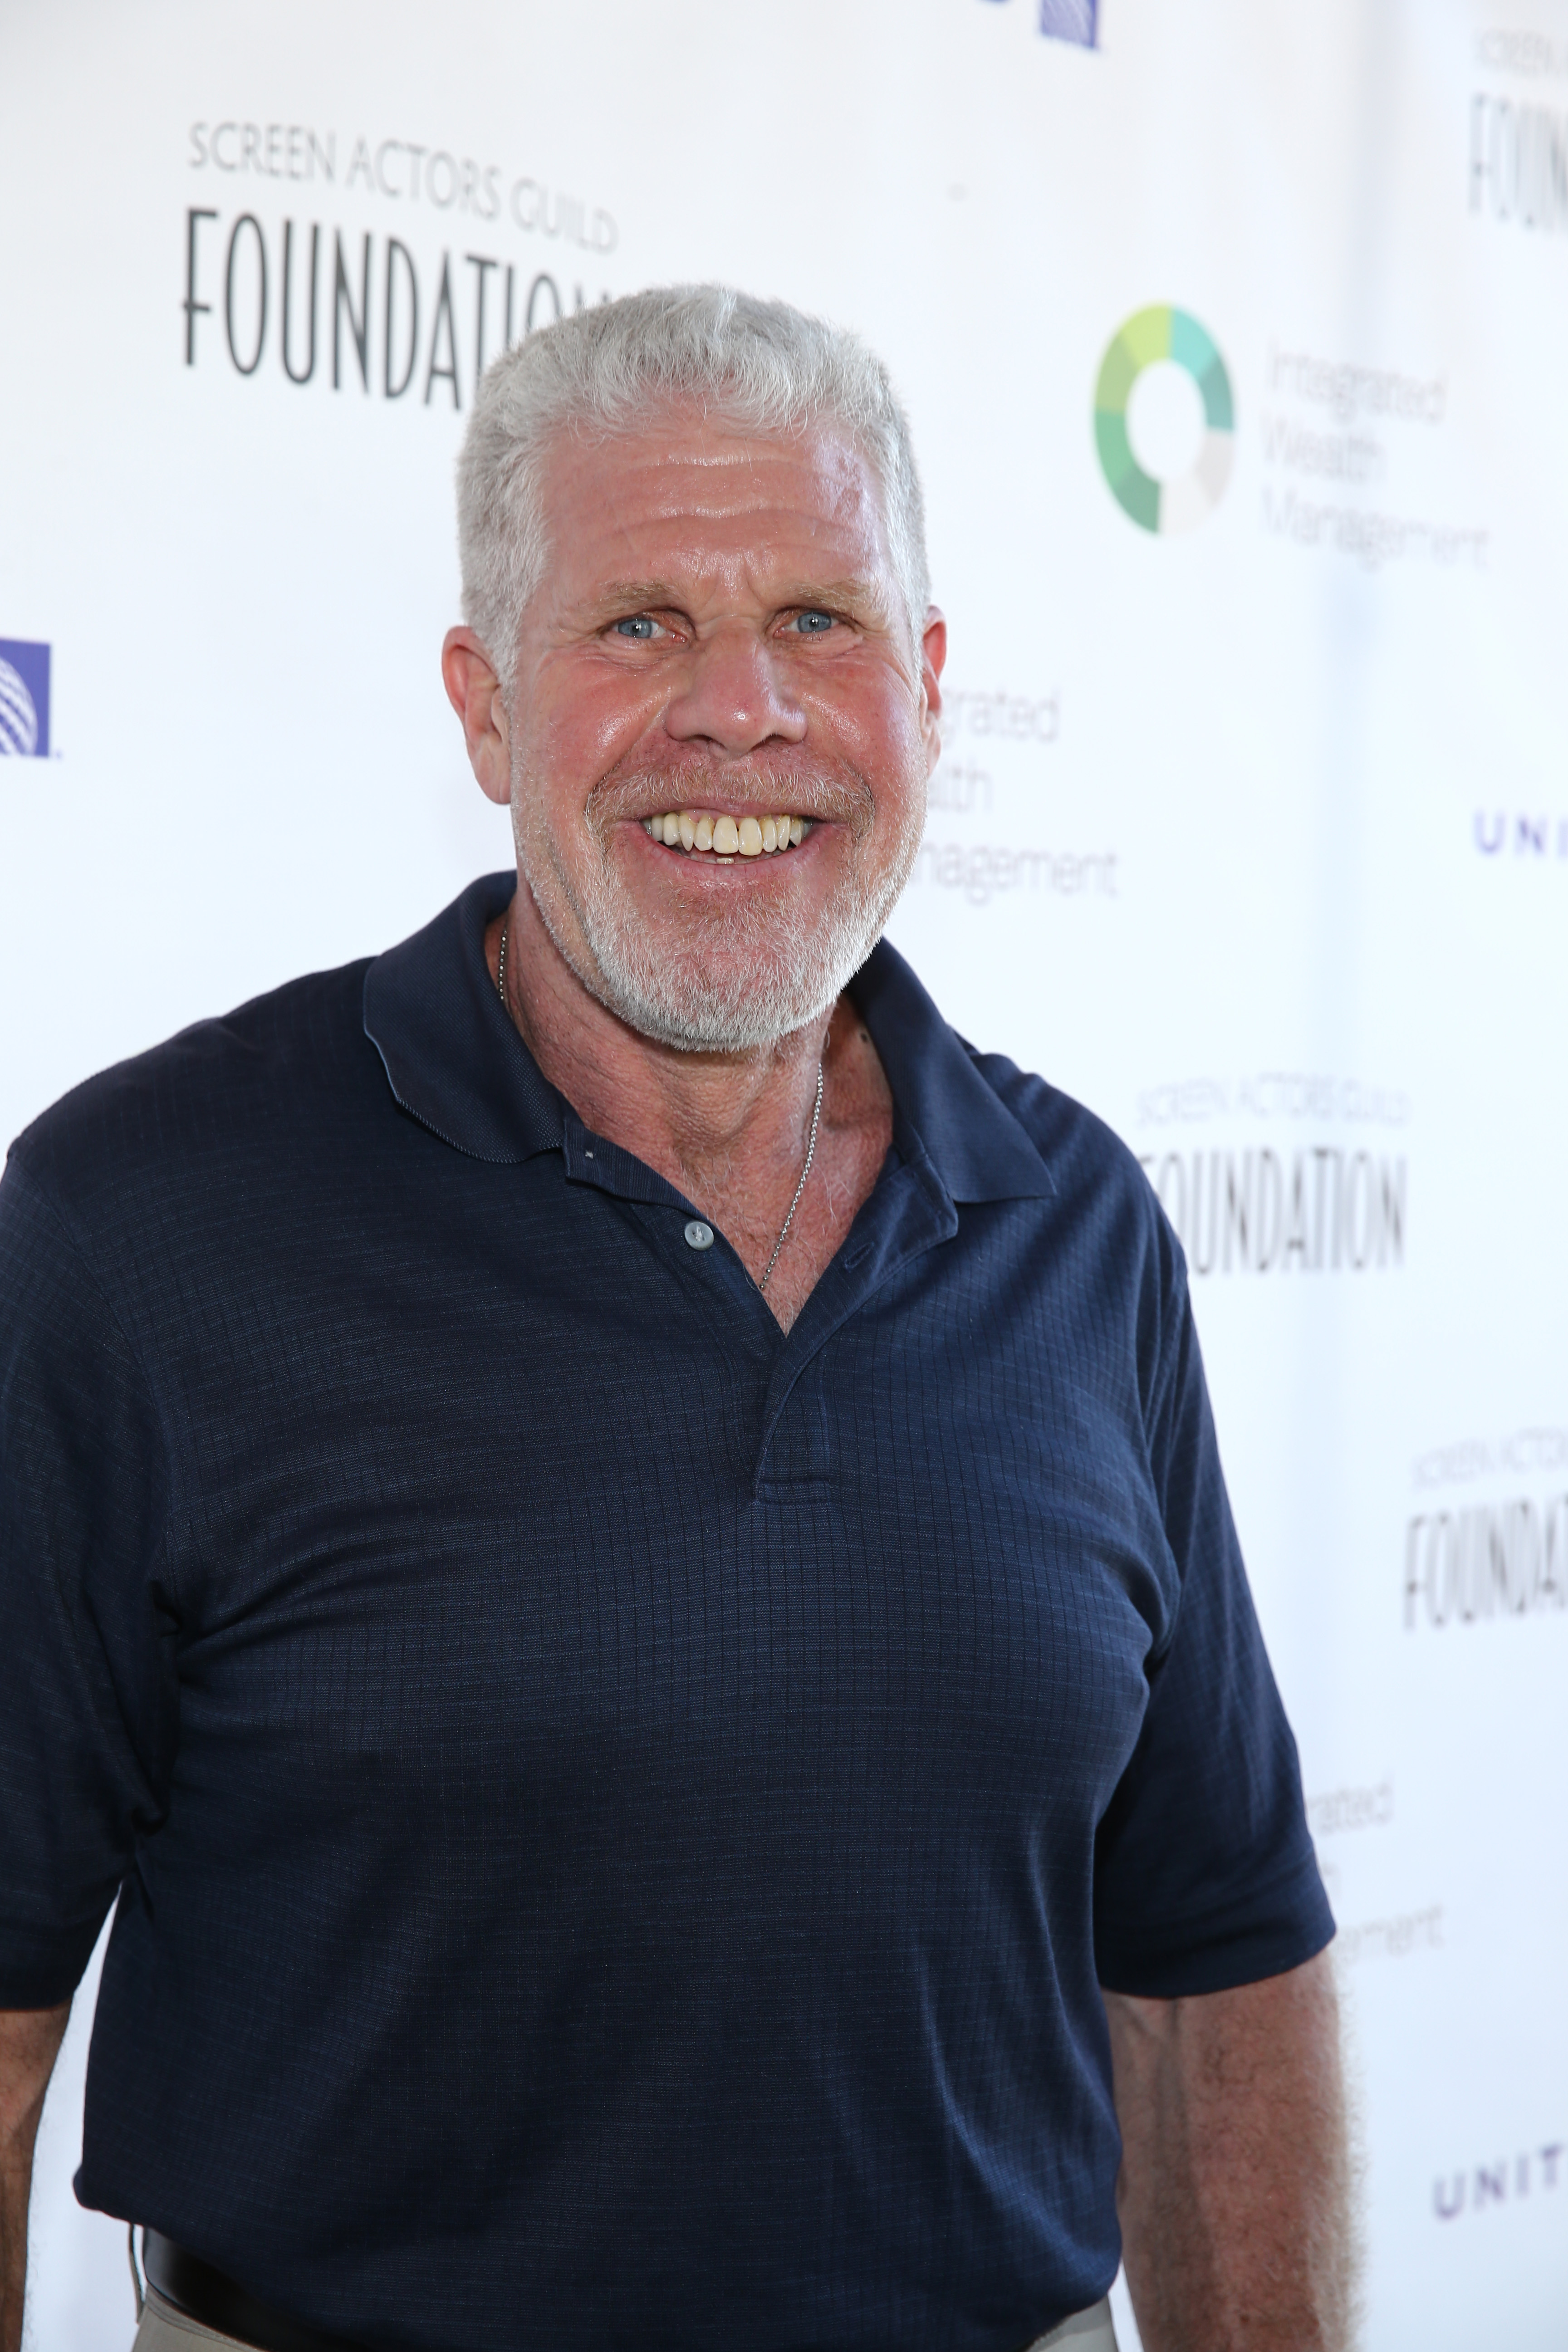 Ron Perlman attends The Screen Actors Guild Foundation's 6th Annual Los Angeles Golf Classic on June 8, 2015 in Burbank, California. (Photo by Mark Davis/Getty Images for The Screen Actors Guild Foundation)